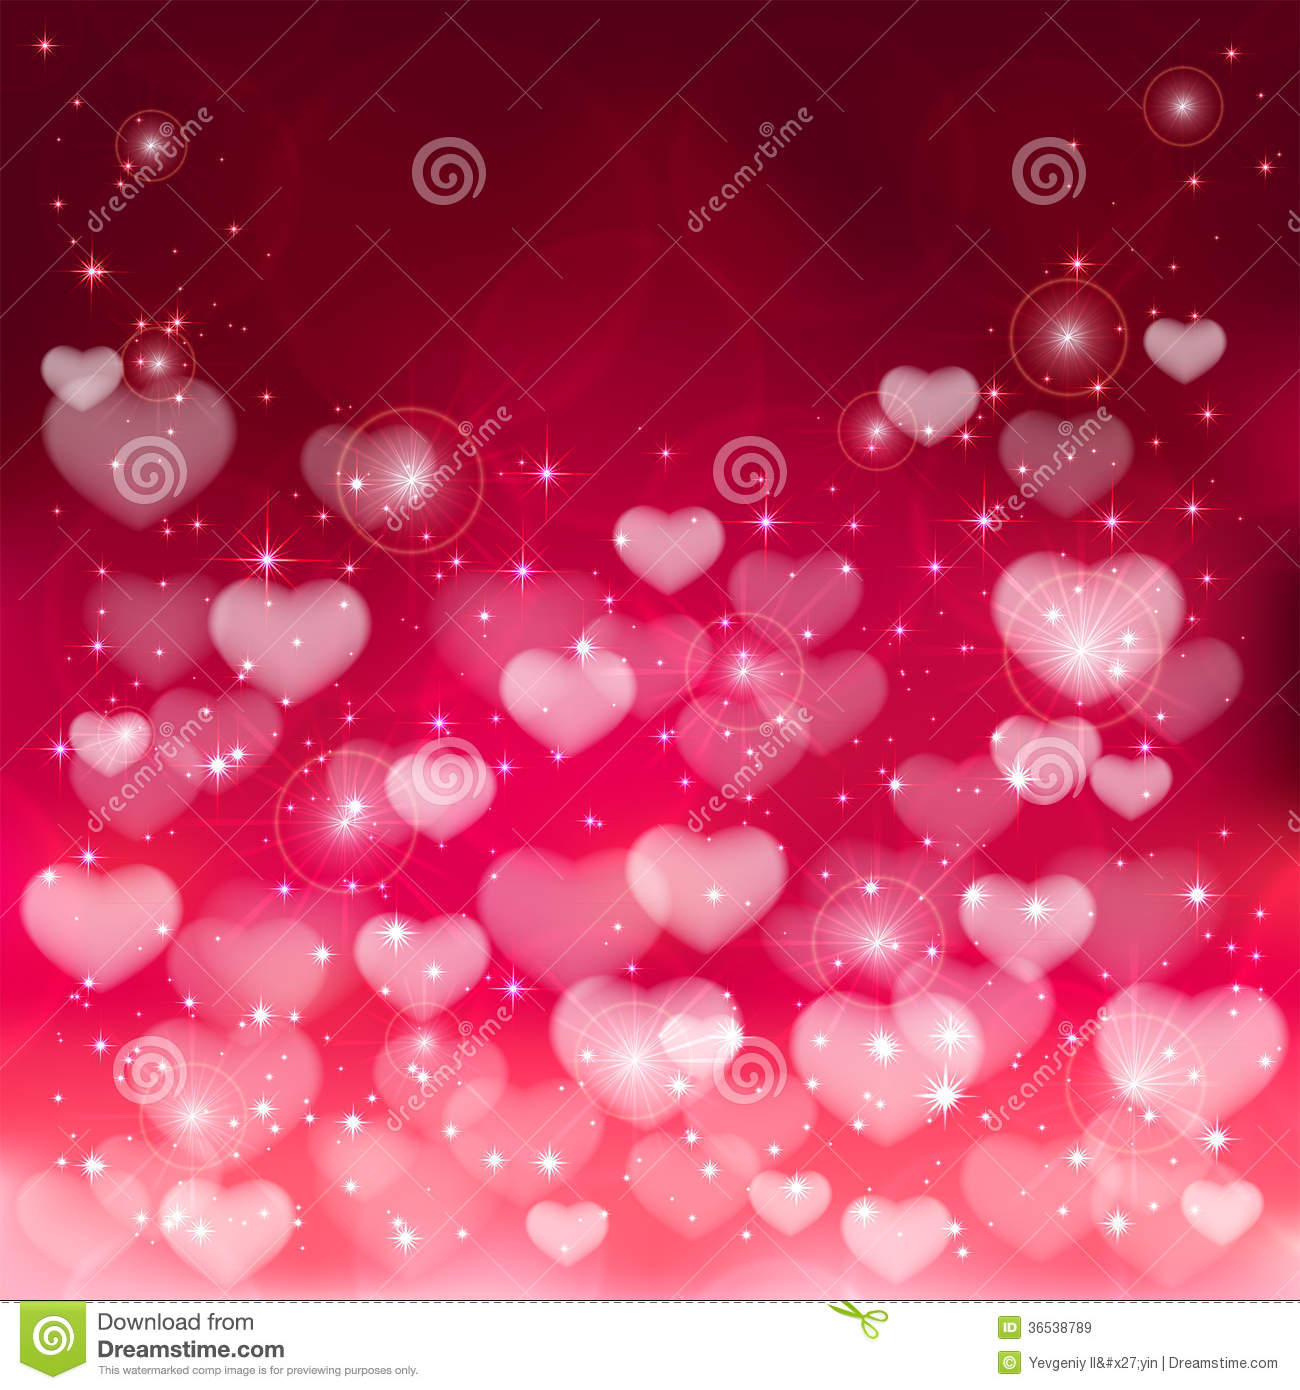 Blurry Hearts Royalty Free Stock Images - Image: 36538789